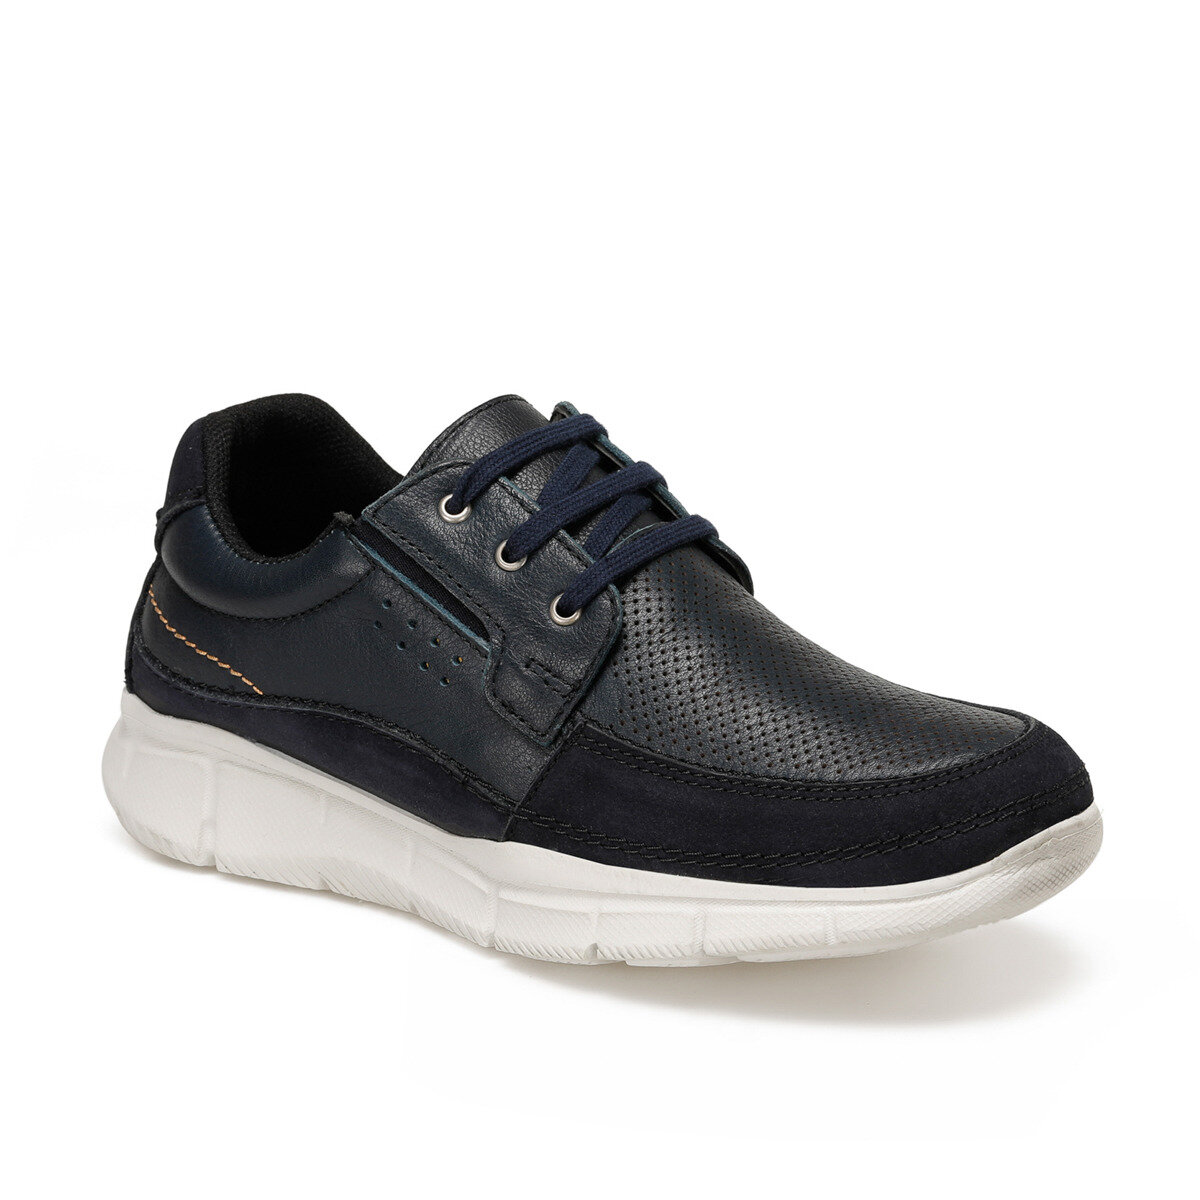 FLO GZL-98 M 1494 Navy Blue Men 'S Modern Shoes Flogart